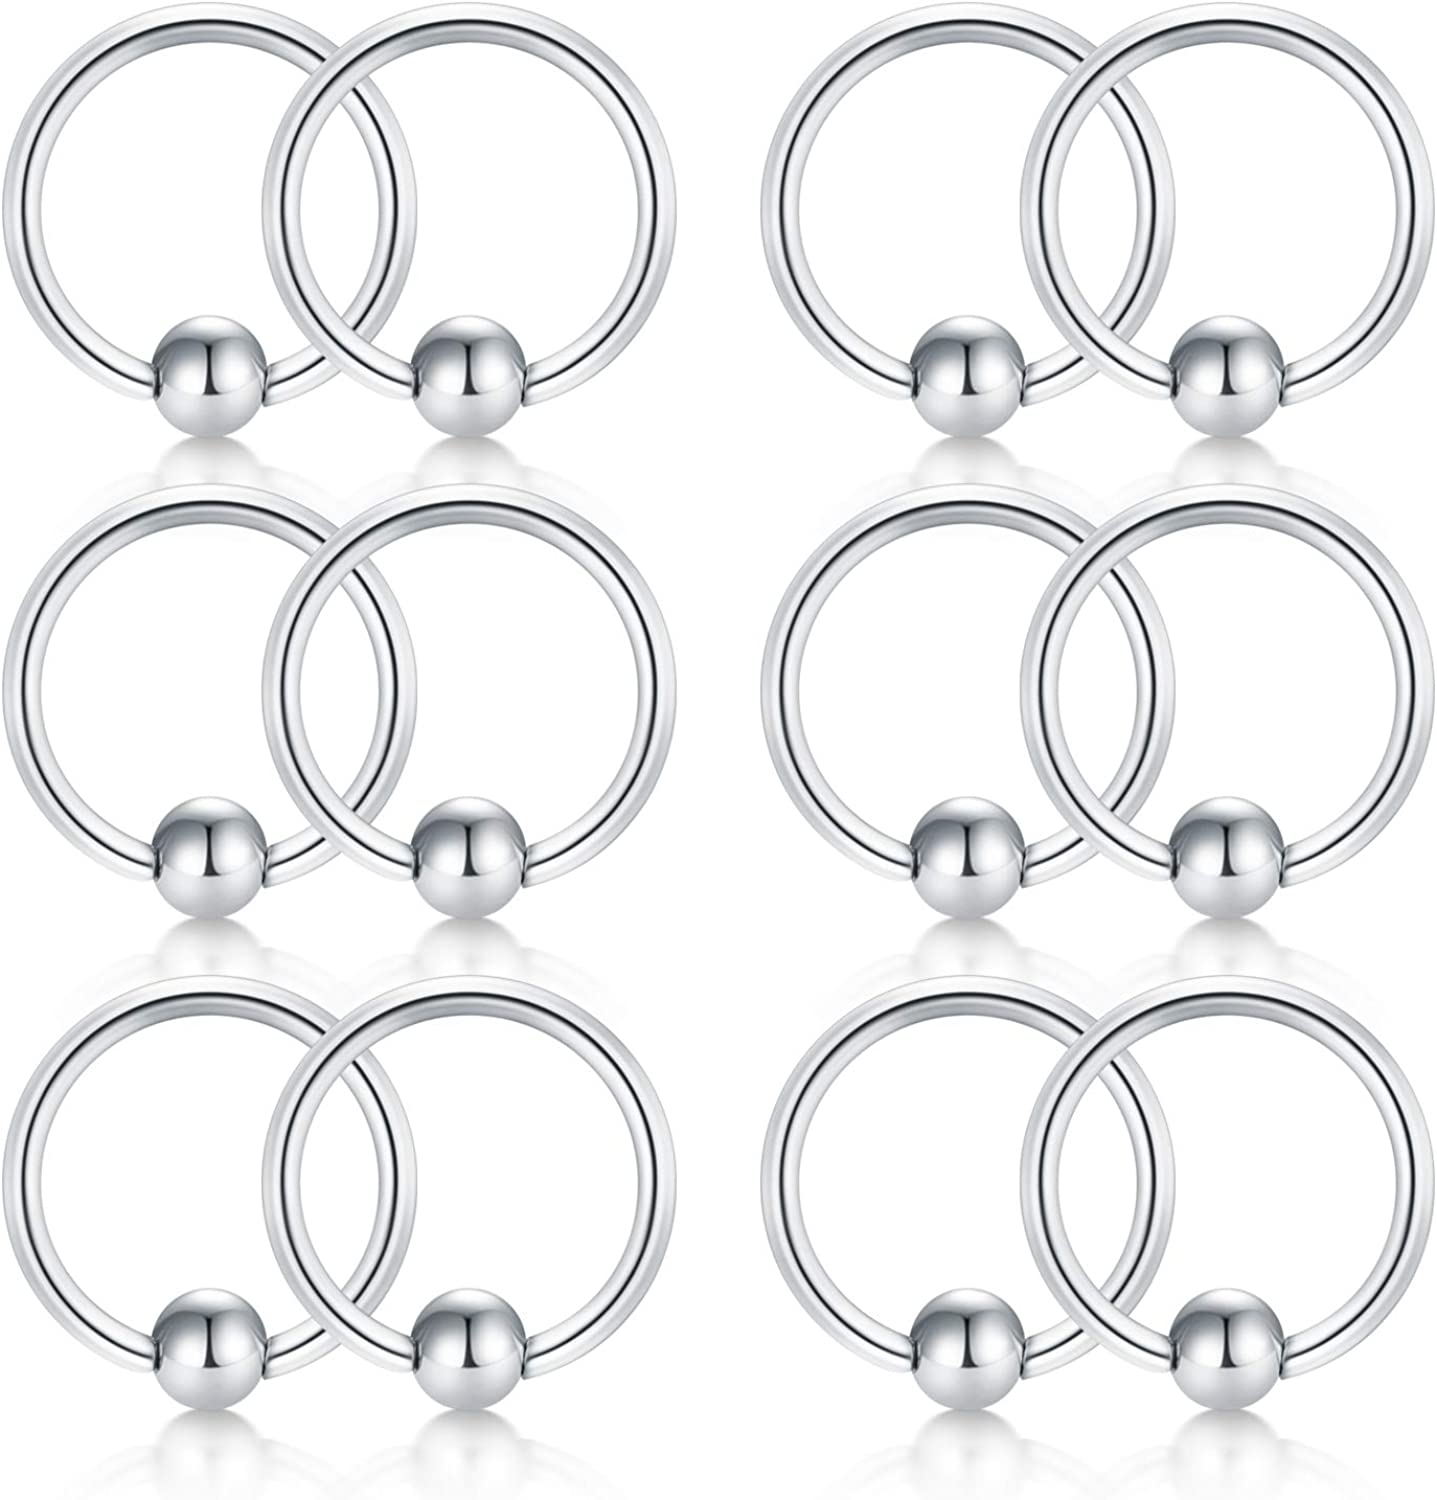 Briana Williams 12pcs 18G Attached Captive Bead Nose Hoop Rings Lip Eyebrow Tongue Helix Tragus Cartilage Earring Septum Piercing Ring 6-12mm